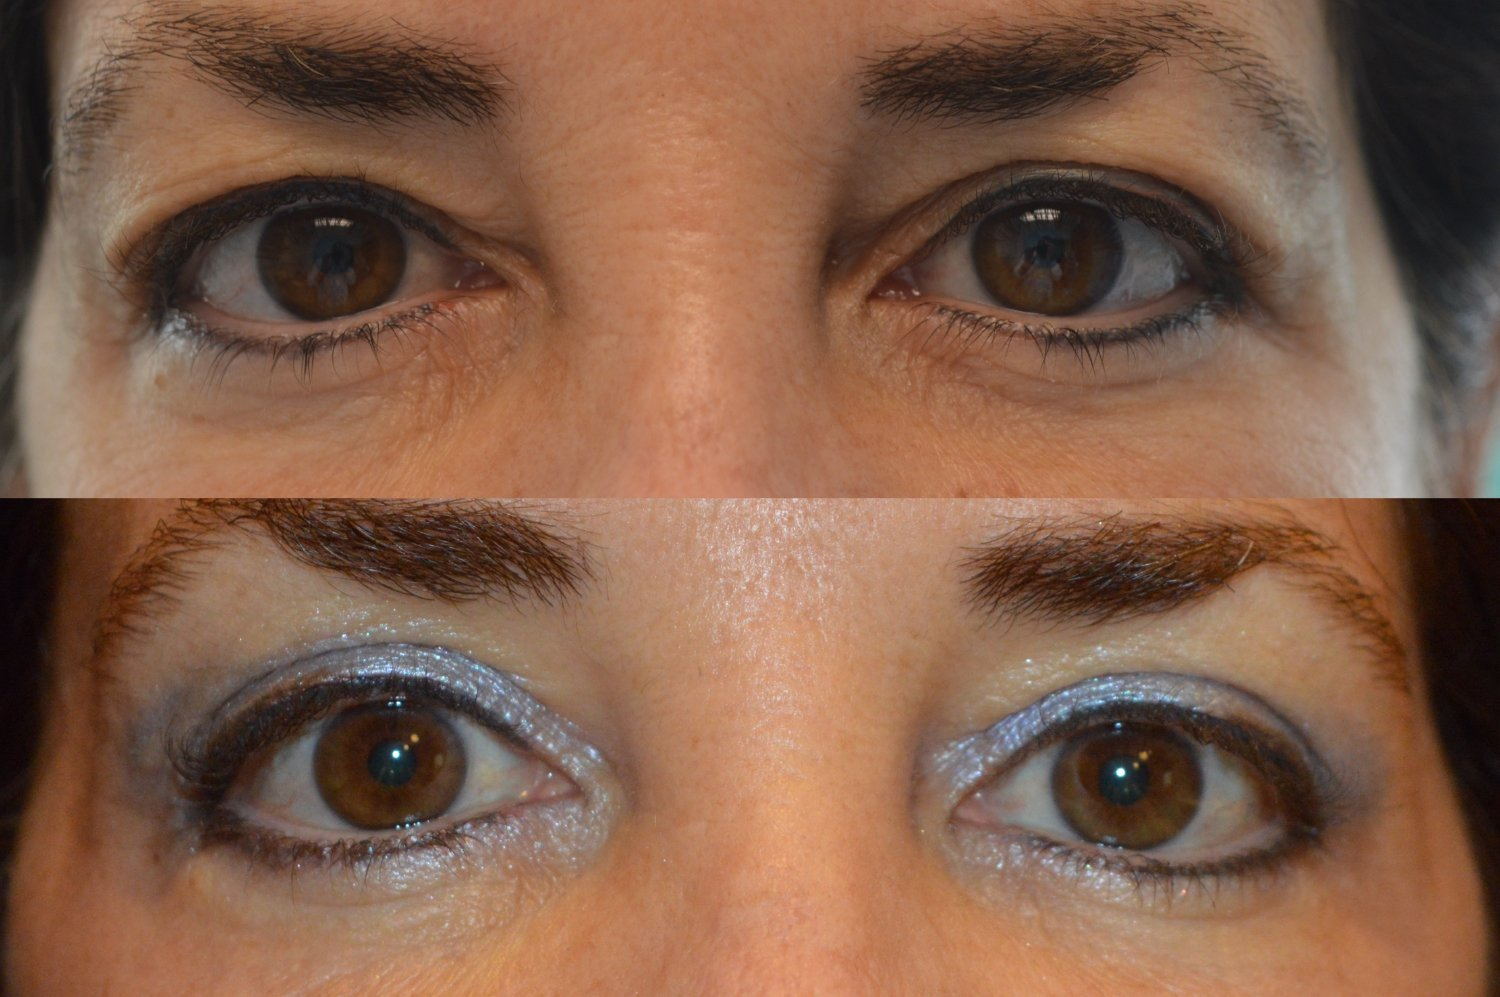 Upper blepharoplasty only under local anesthesia